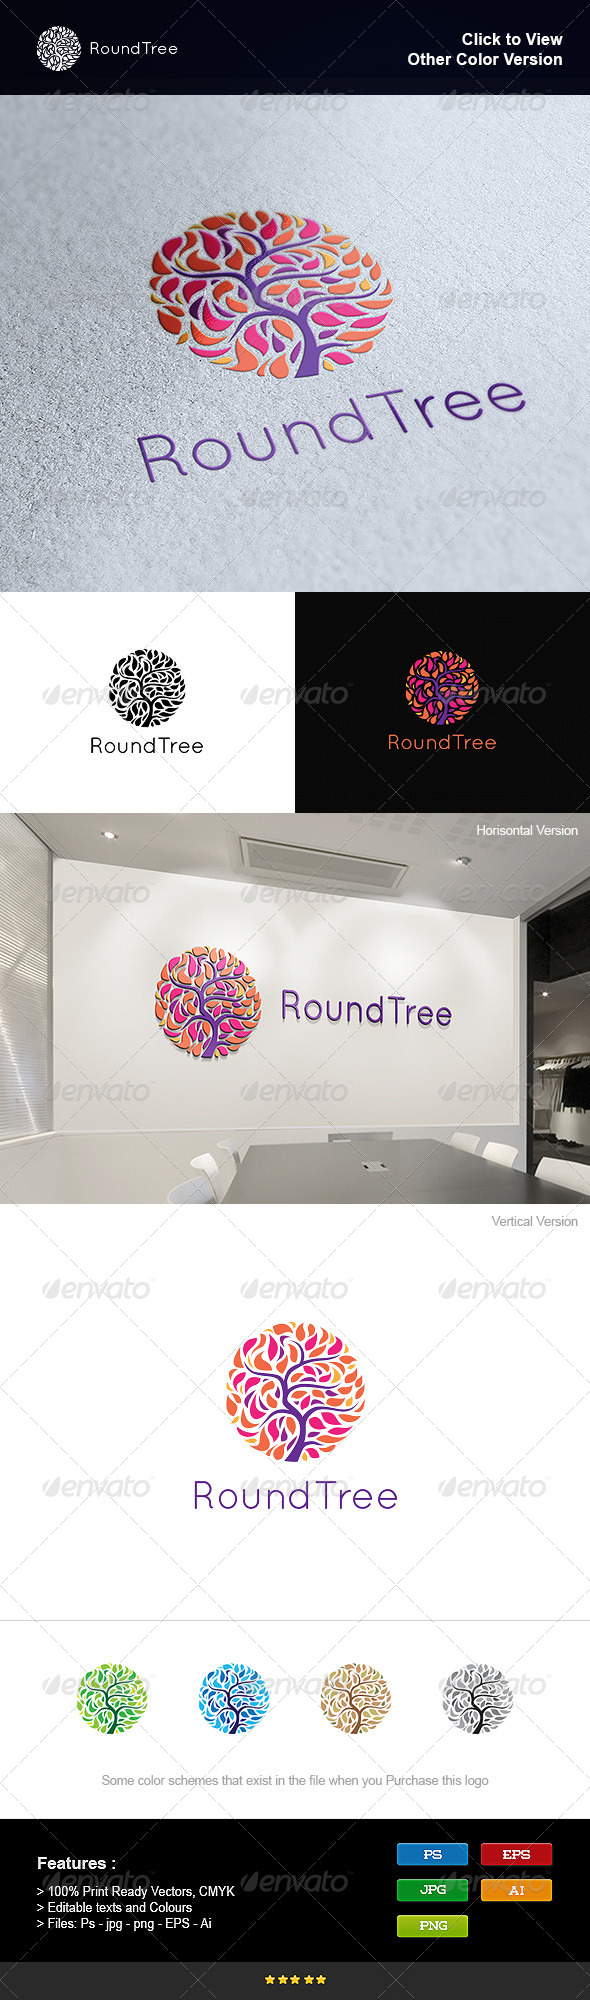 GraphicRiver Round Tree 8250966